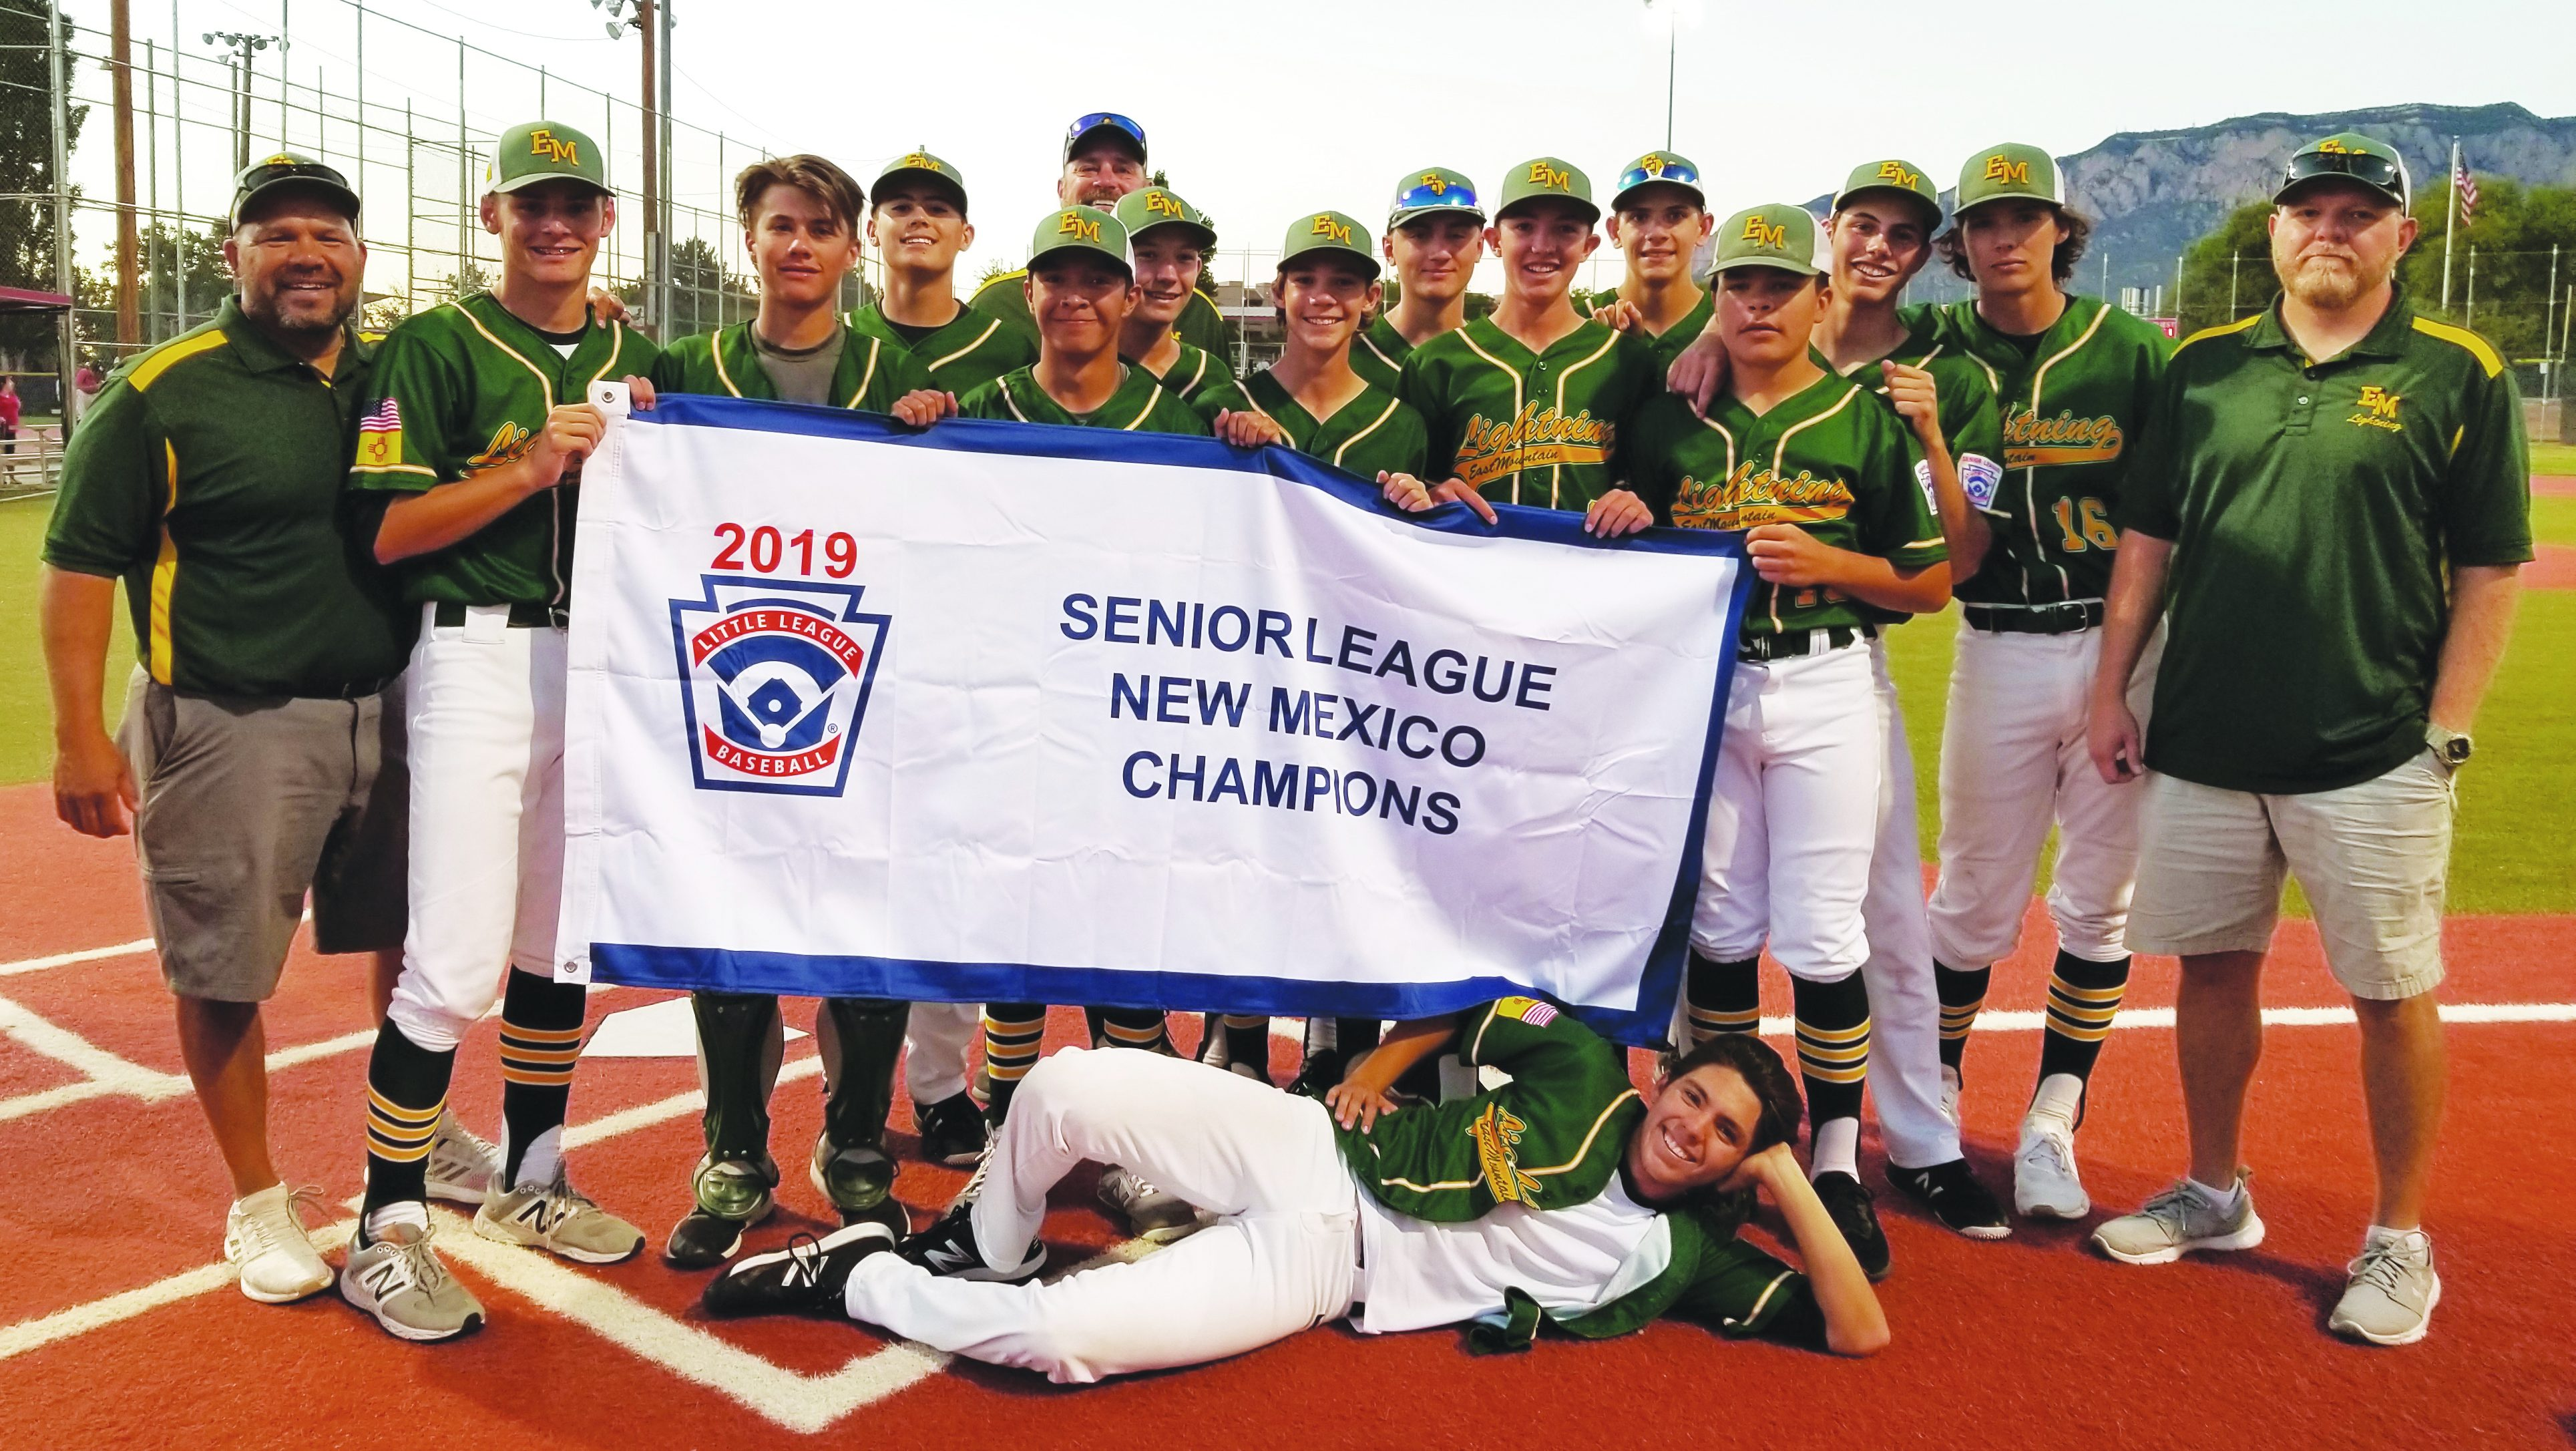 East Mountain Little League Senior All-Stars capture first-ever state championship